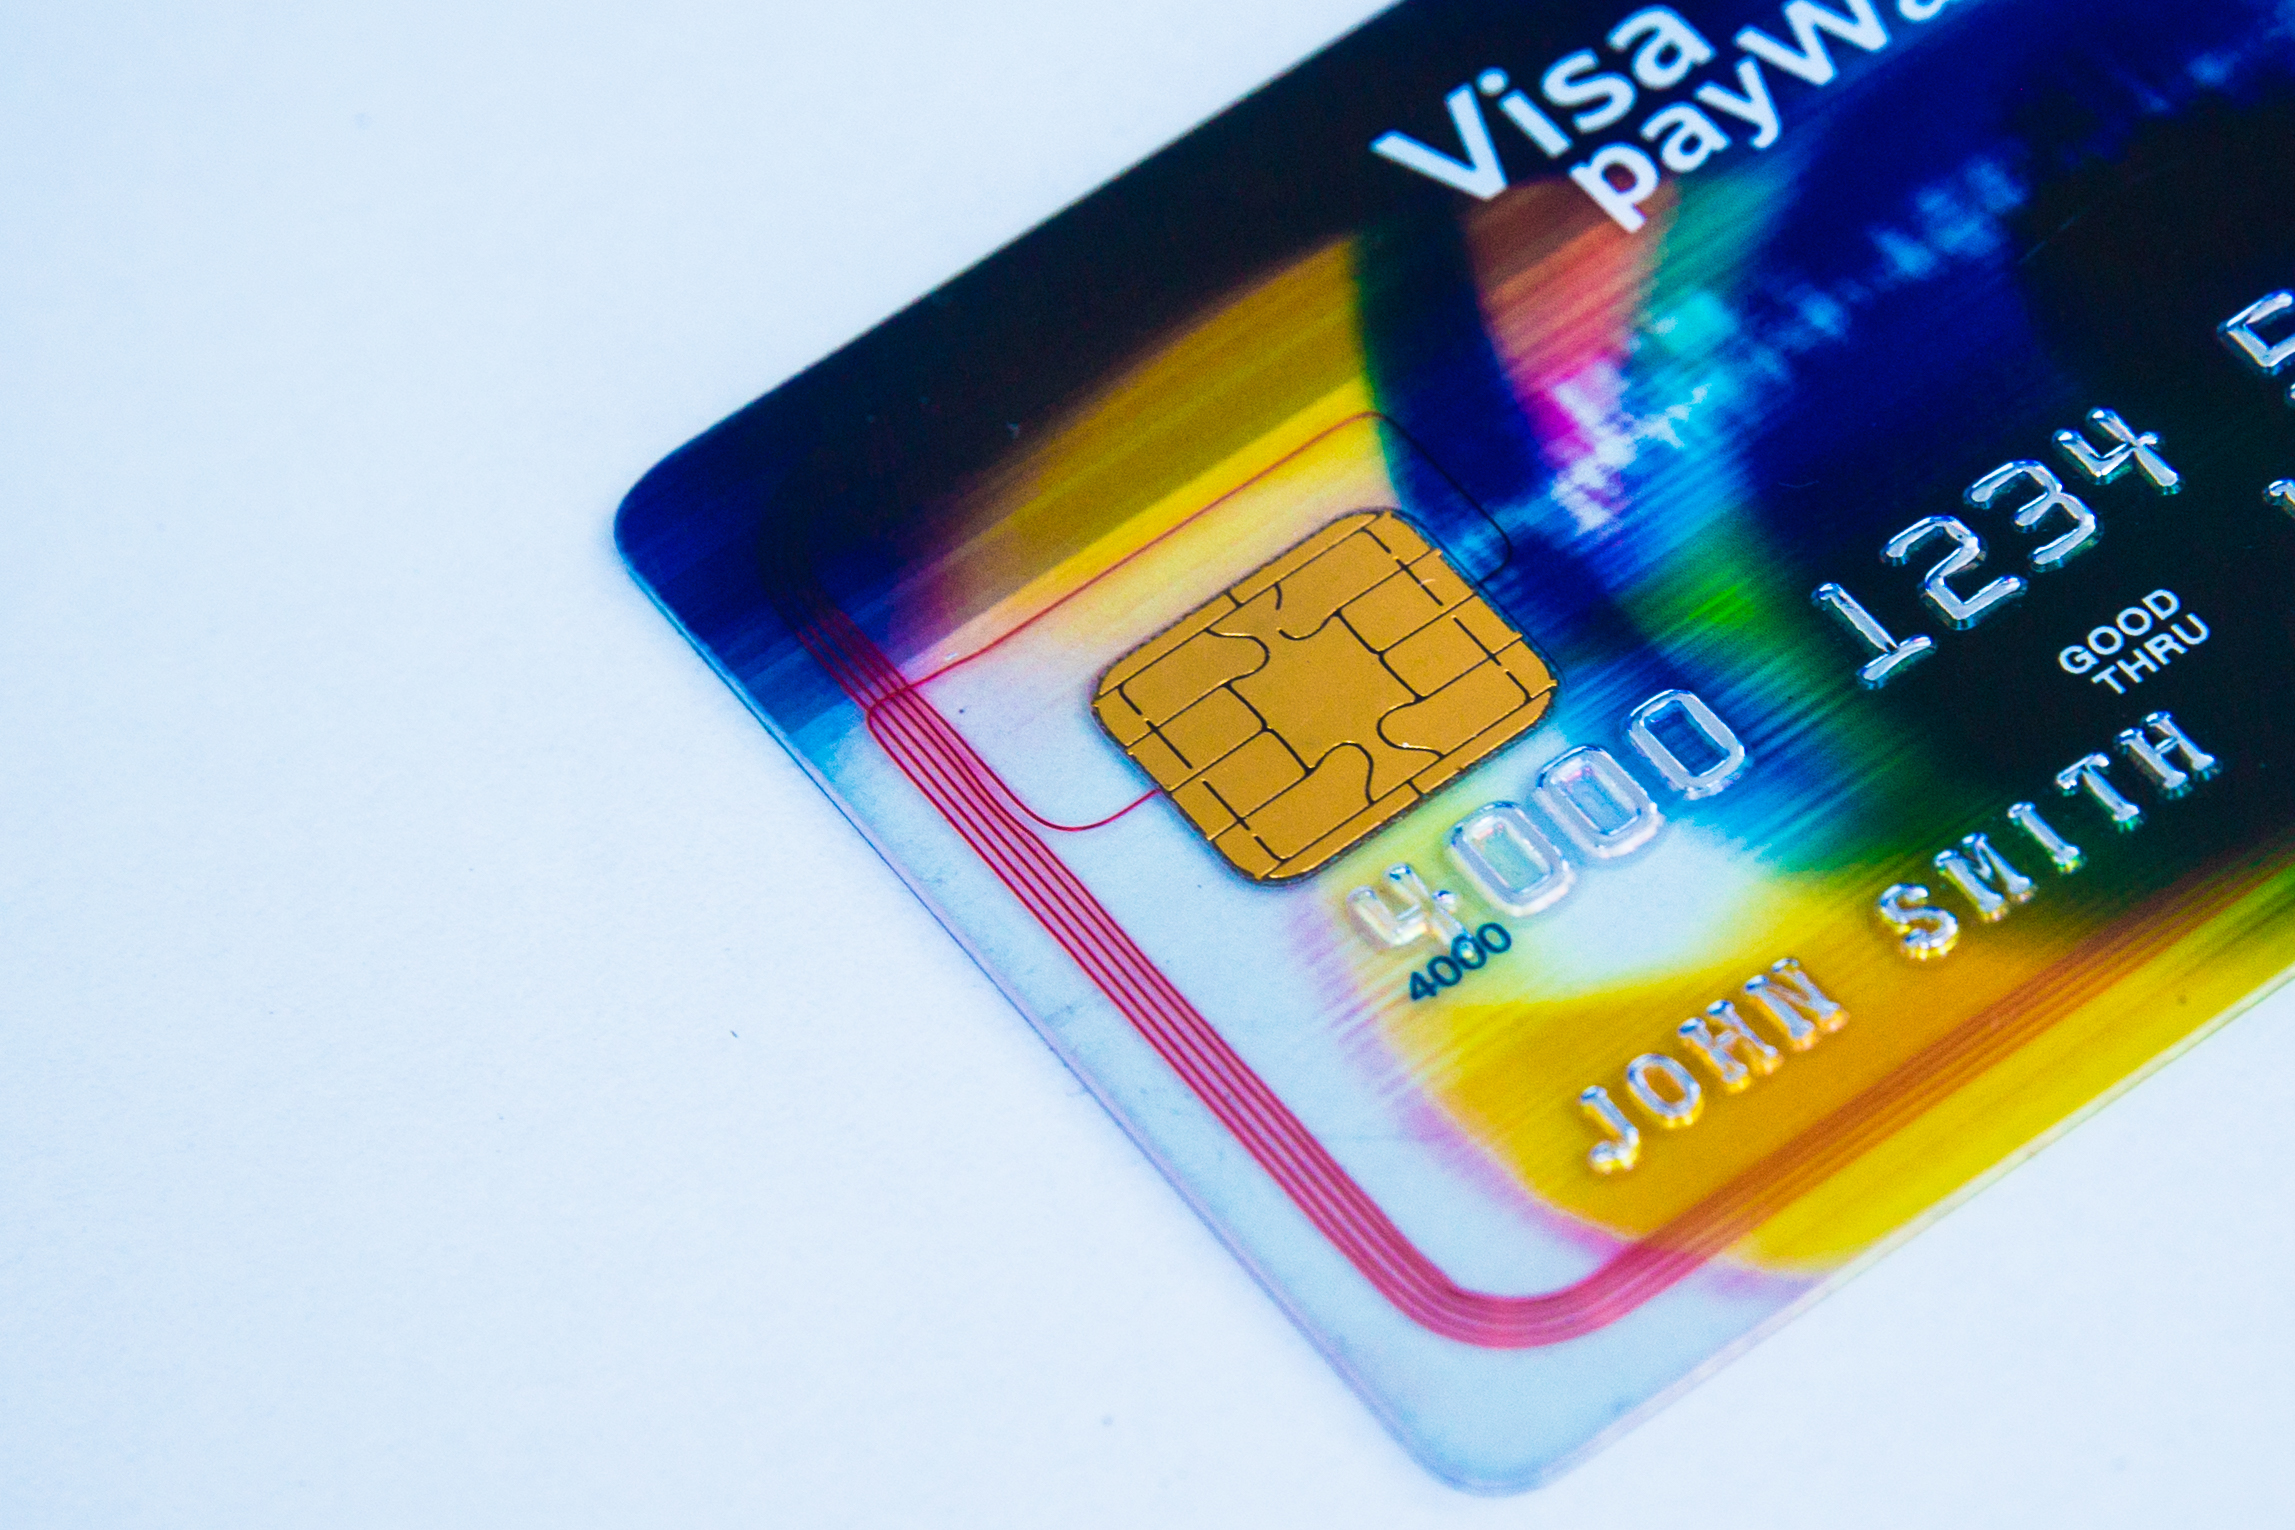 mobile-payments-visa-paywave-chip-security-credit-cards-4859.jpg